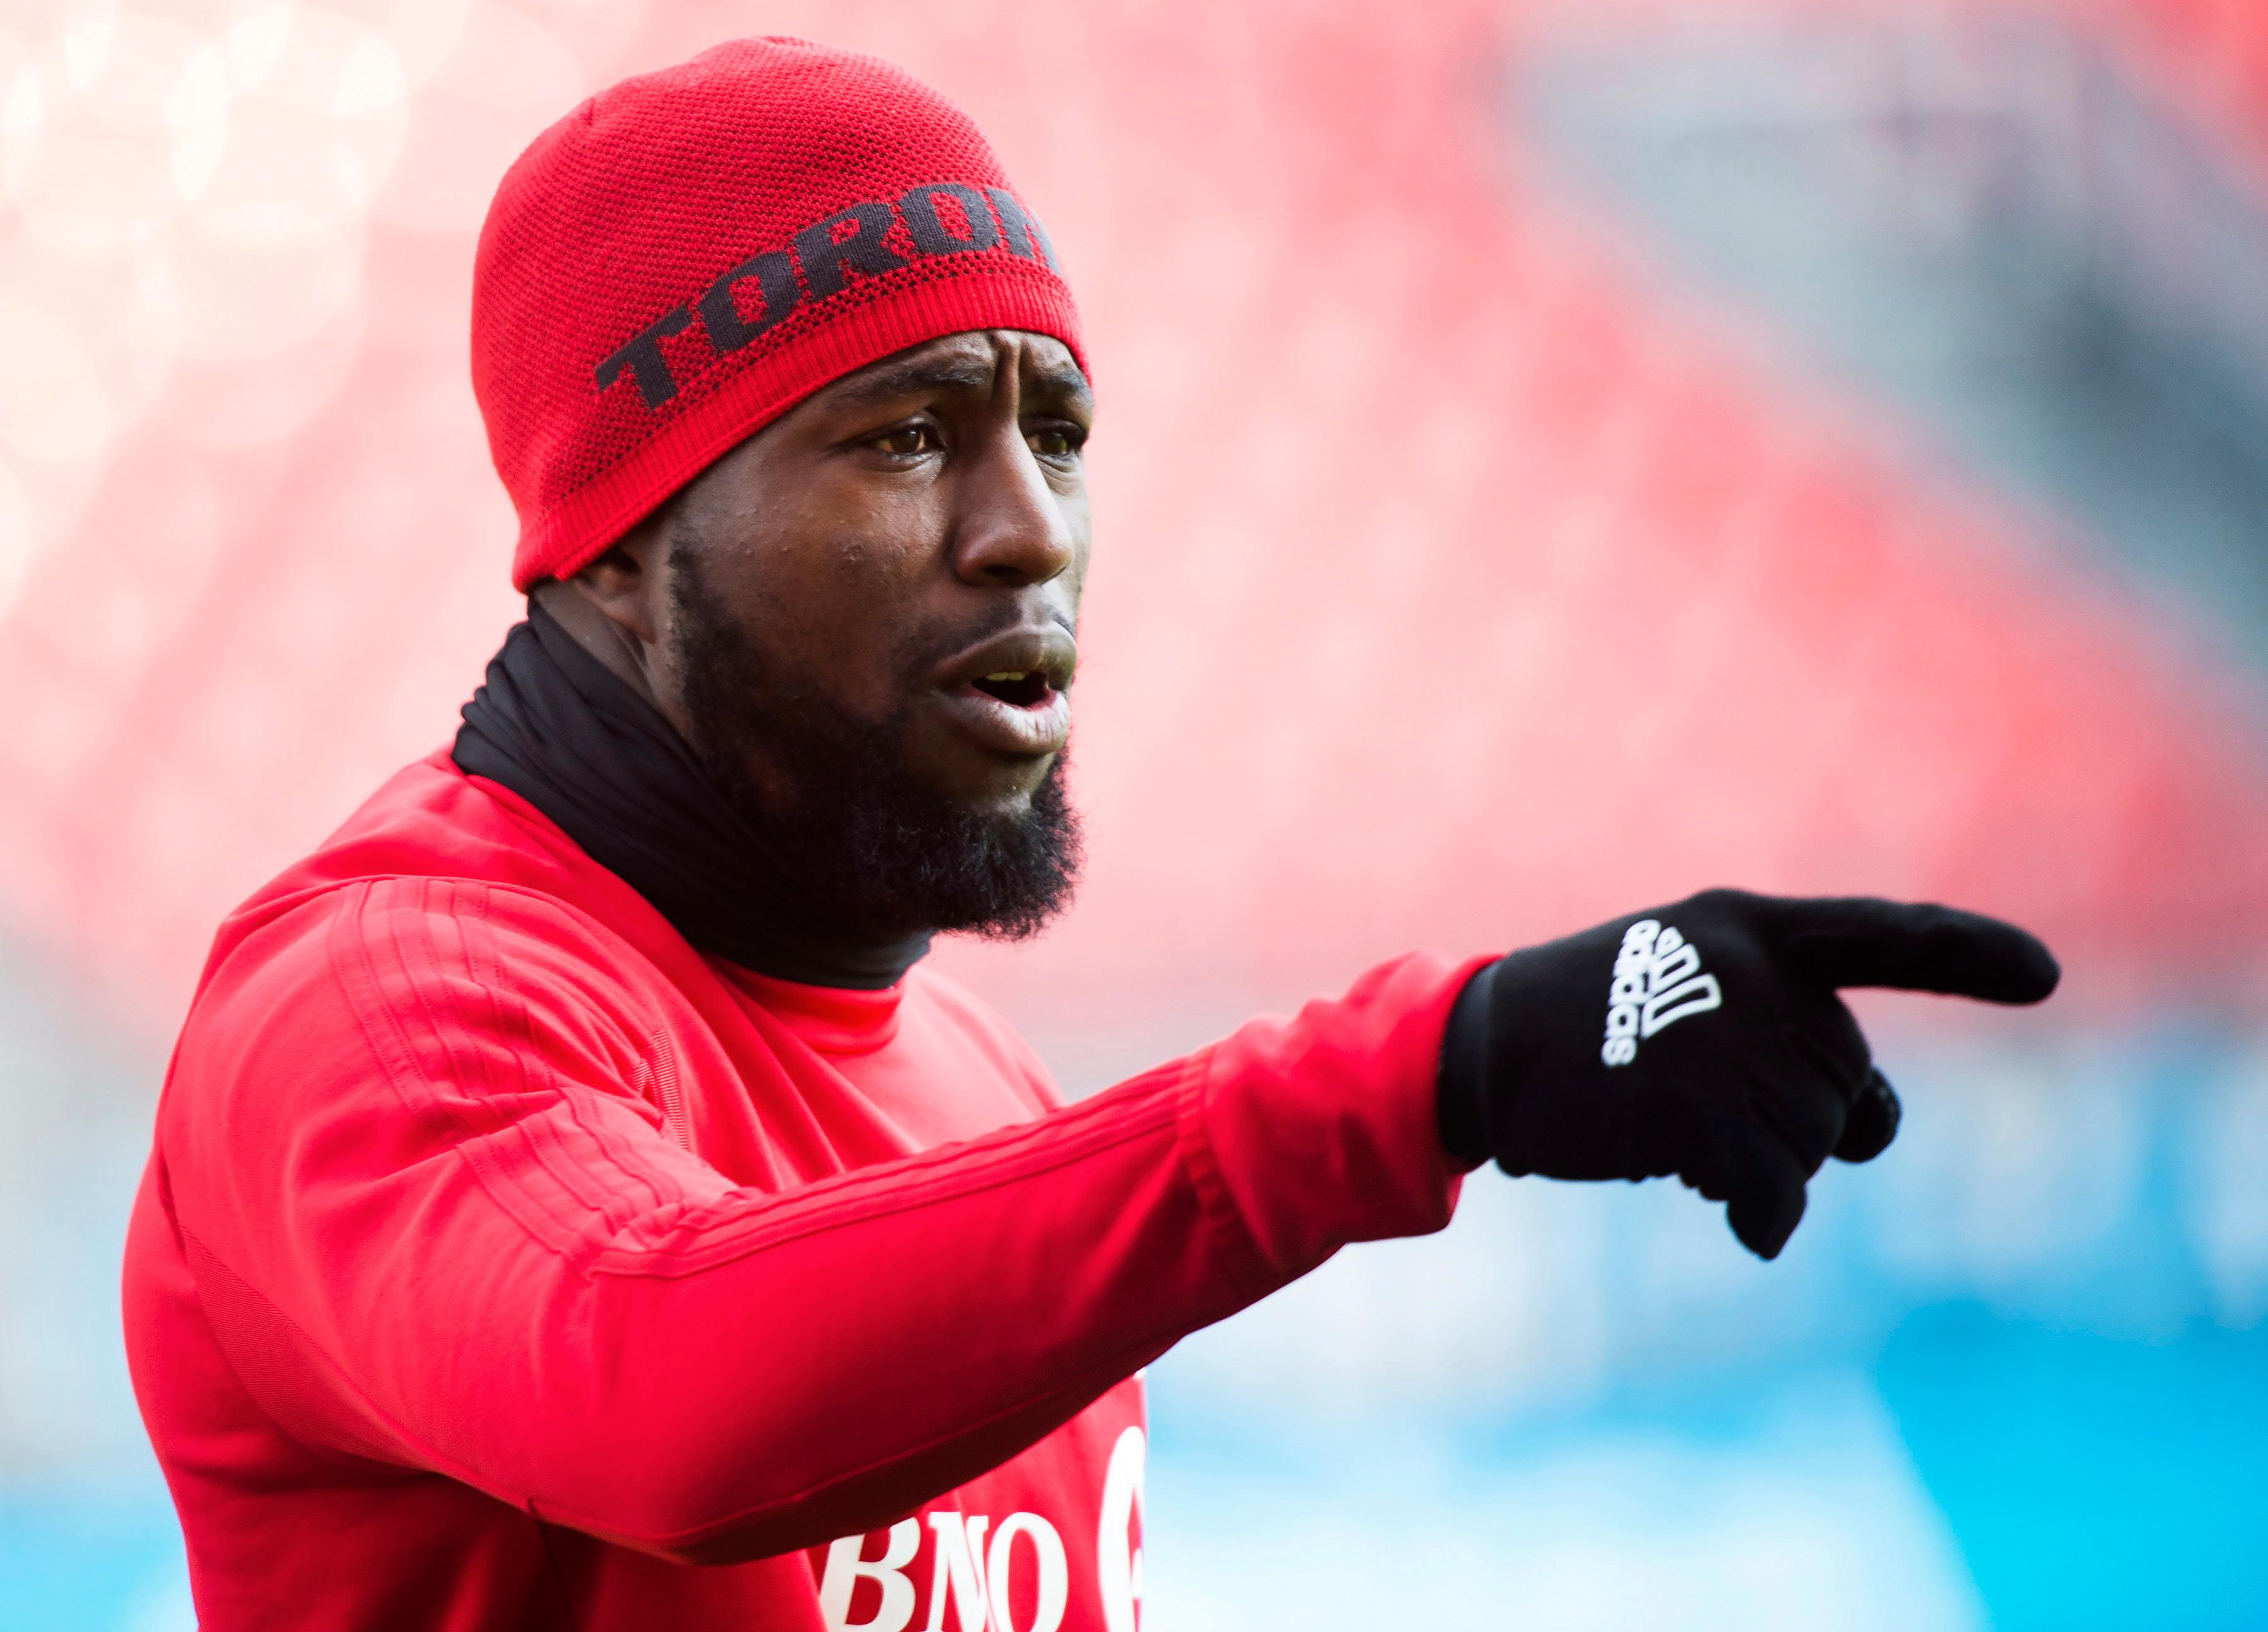 Toronto FC forward Jozy Altidore warms up during practice ahead of the MLS Cup soccer final against the Seattle Sounders, in Toronto, Friday, Dec. 8, 2017. (Nathan Denette/The Canadian Press via AP)